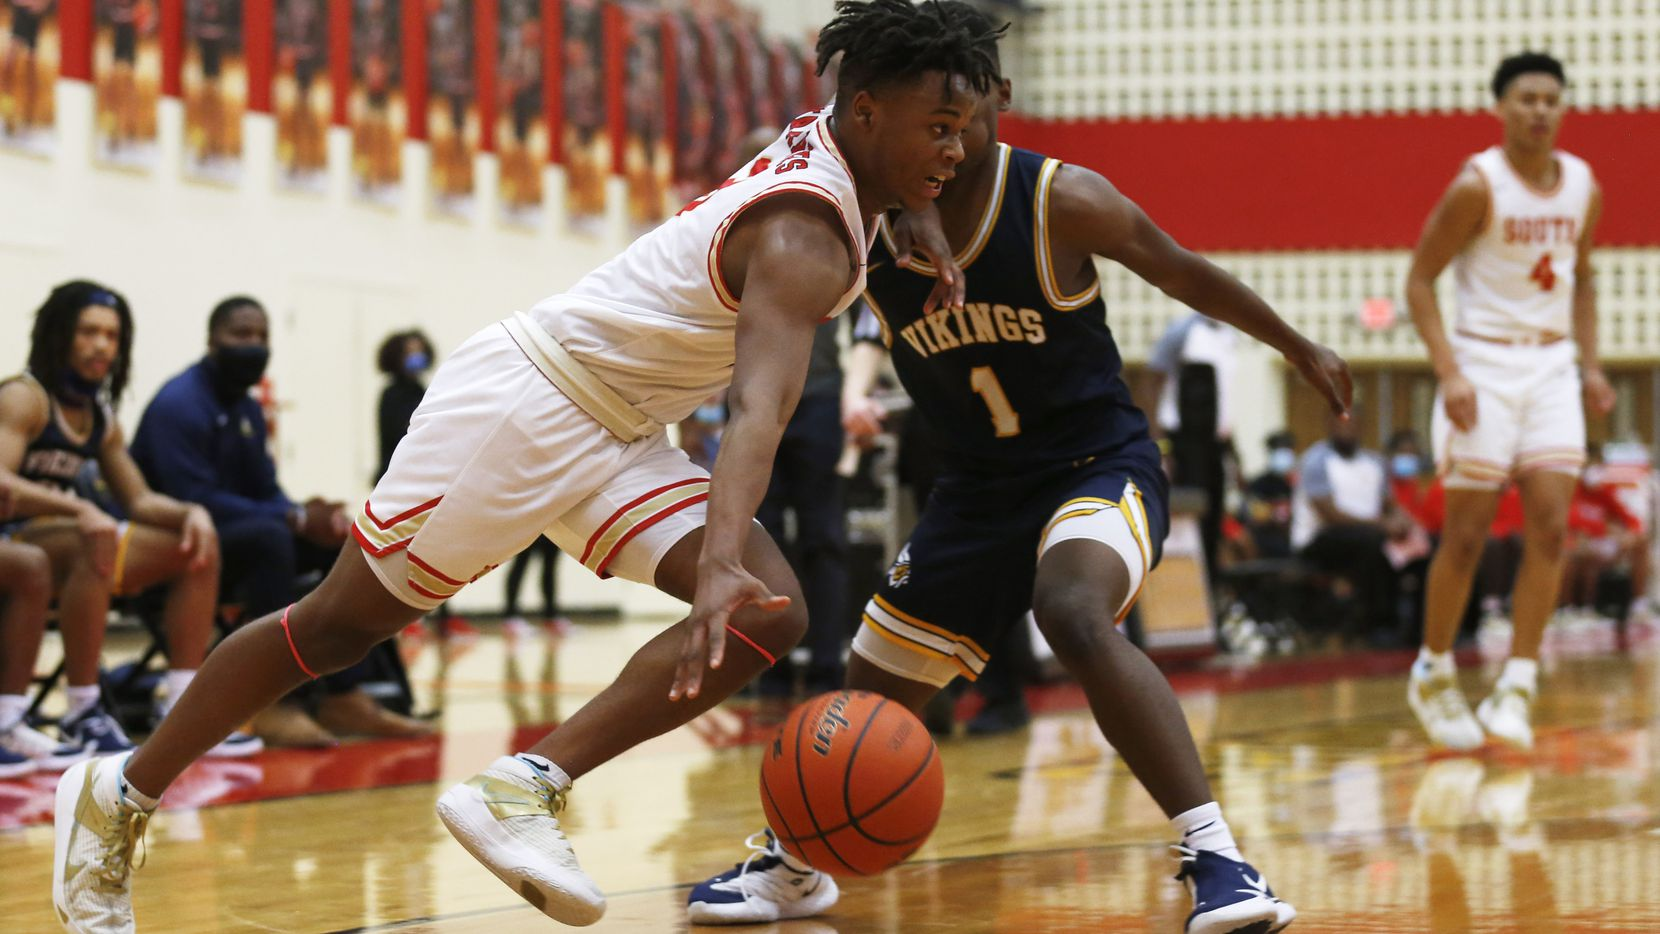 South Grand Prairie's Anthony Solomon (3) drives past  Arlington Lamar's Jalen Ware-Williams (1) during the first quarter of play at South Grand Prairie High School on Tuesday, January 19, 2021in Grand Prairie, Texas.